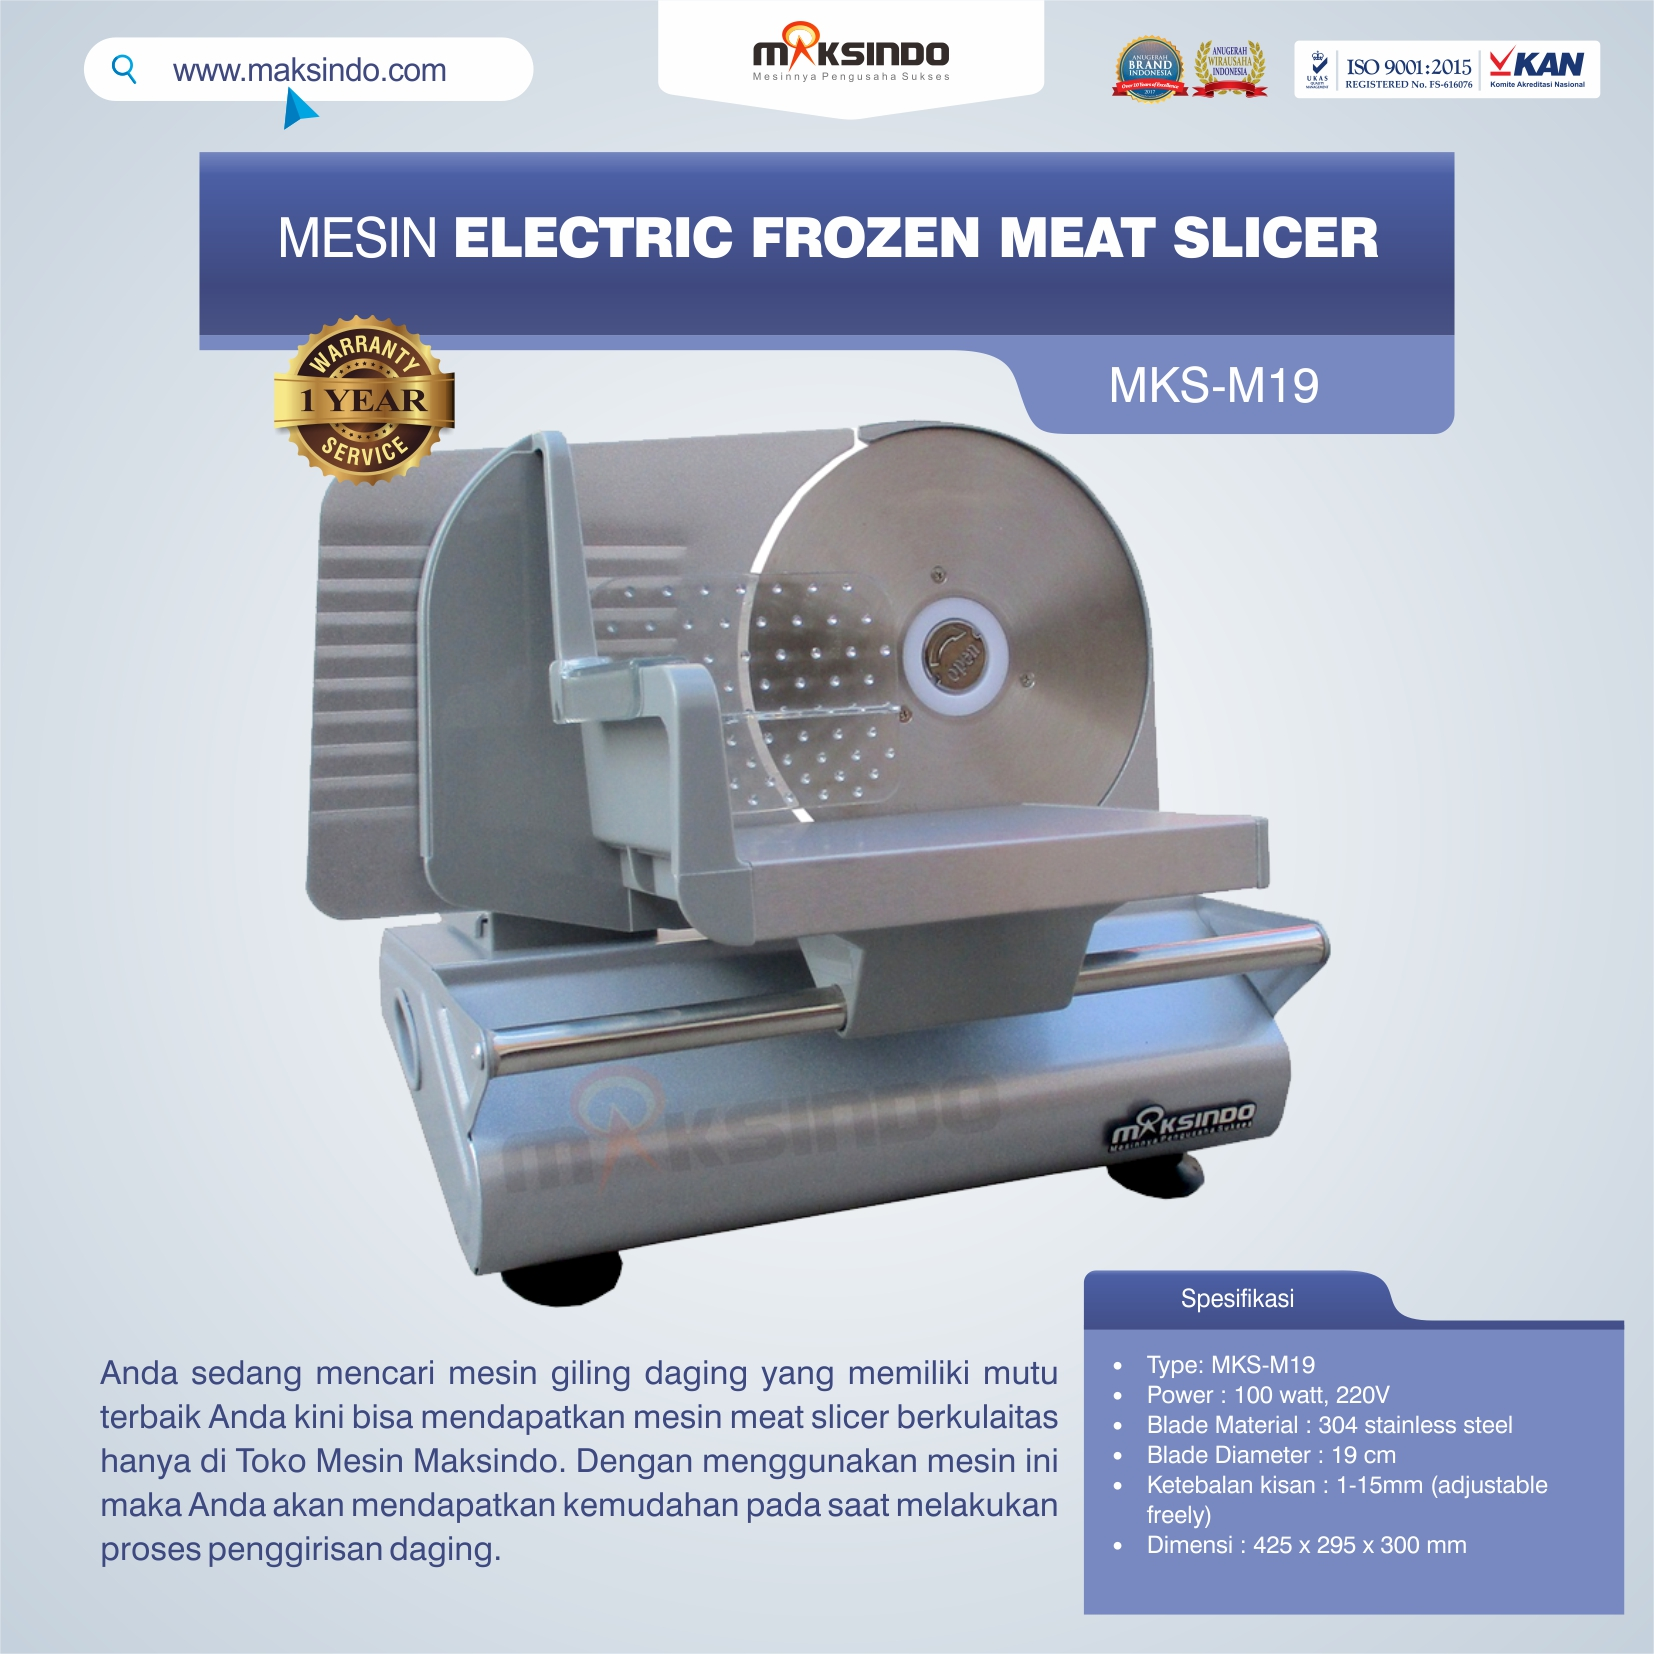 Jual Mesin Electric Frozen Meat Slicer MKS-M19 di Solo